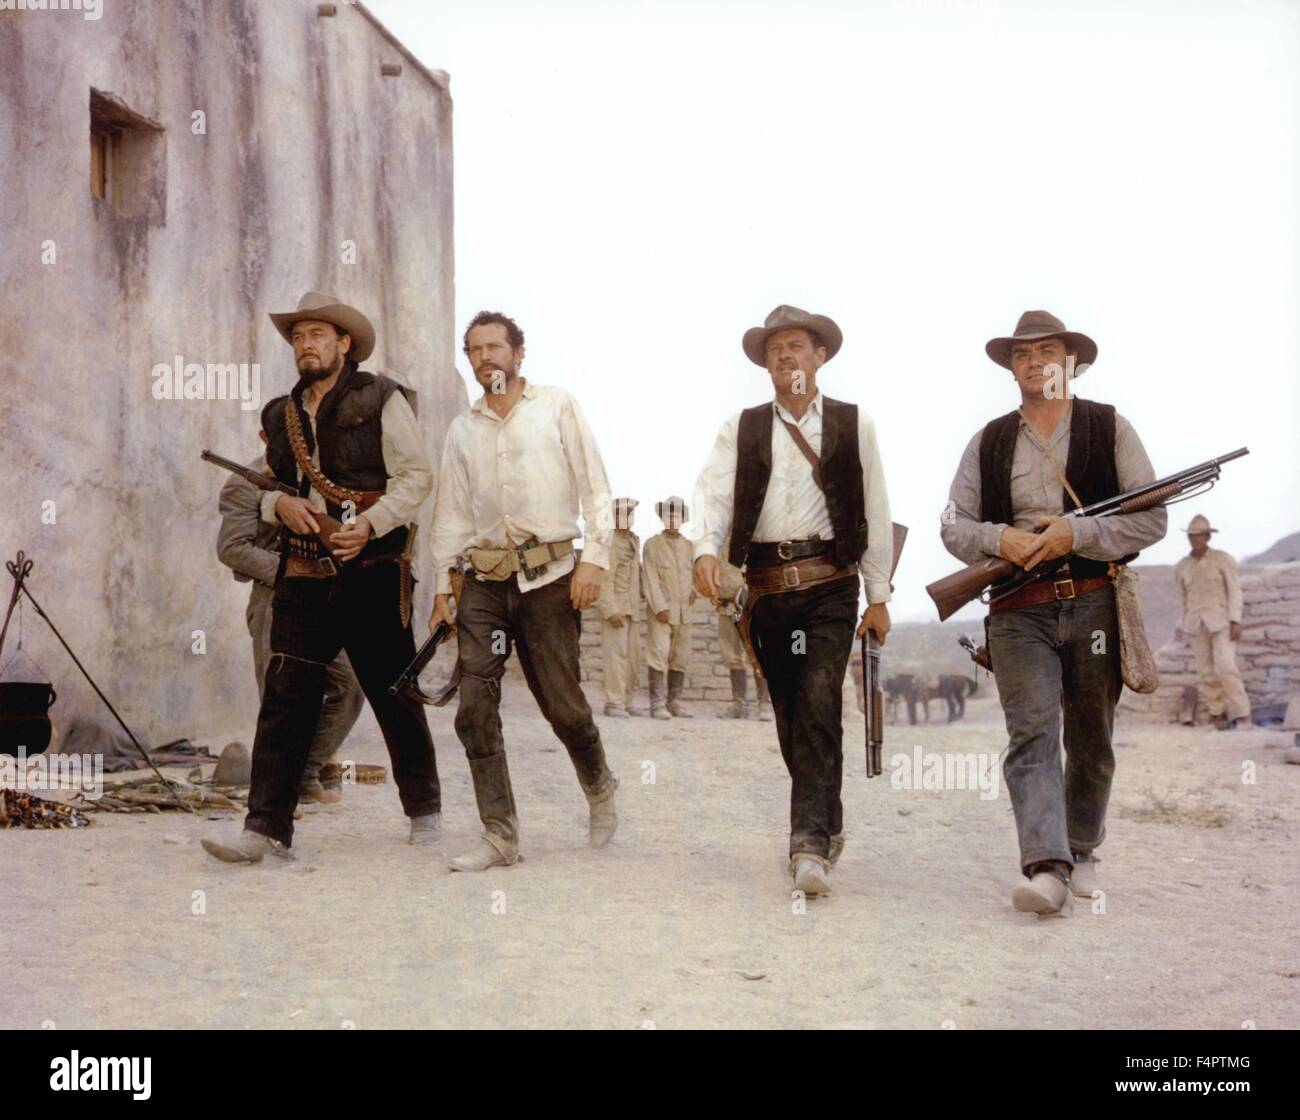 Ben Johnson, Warren Oates, William Holden and Ernest Borgnine / The Wild Bunch / 1969 directed by Sam Peckinpah - Stock Image